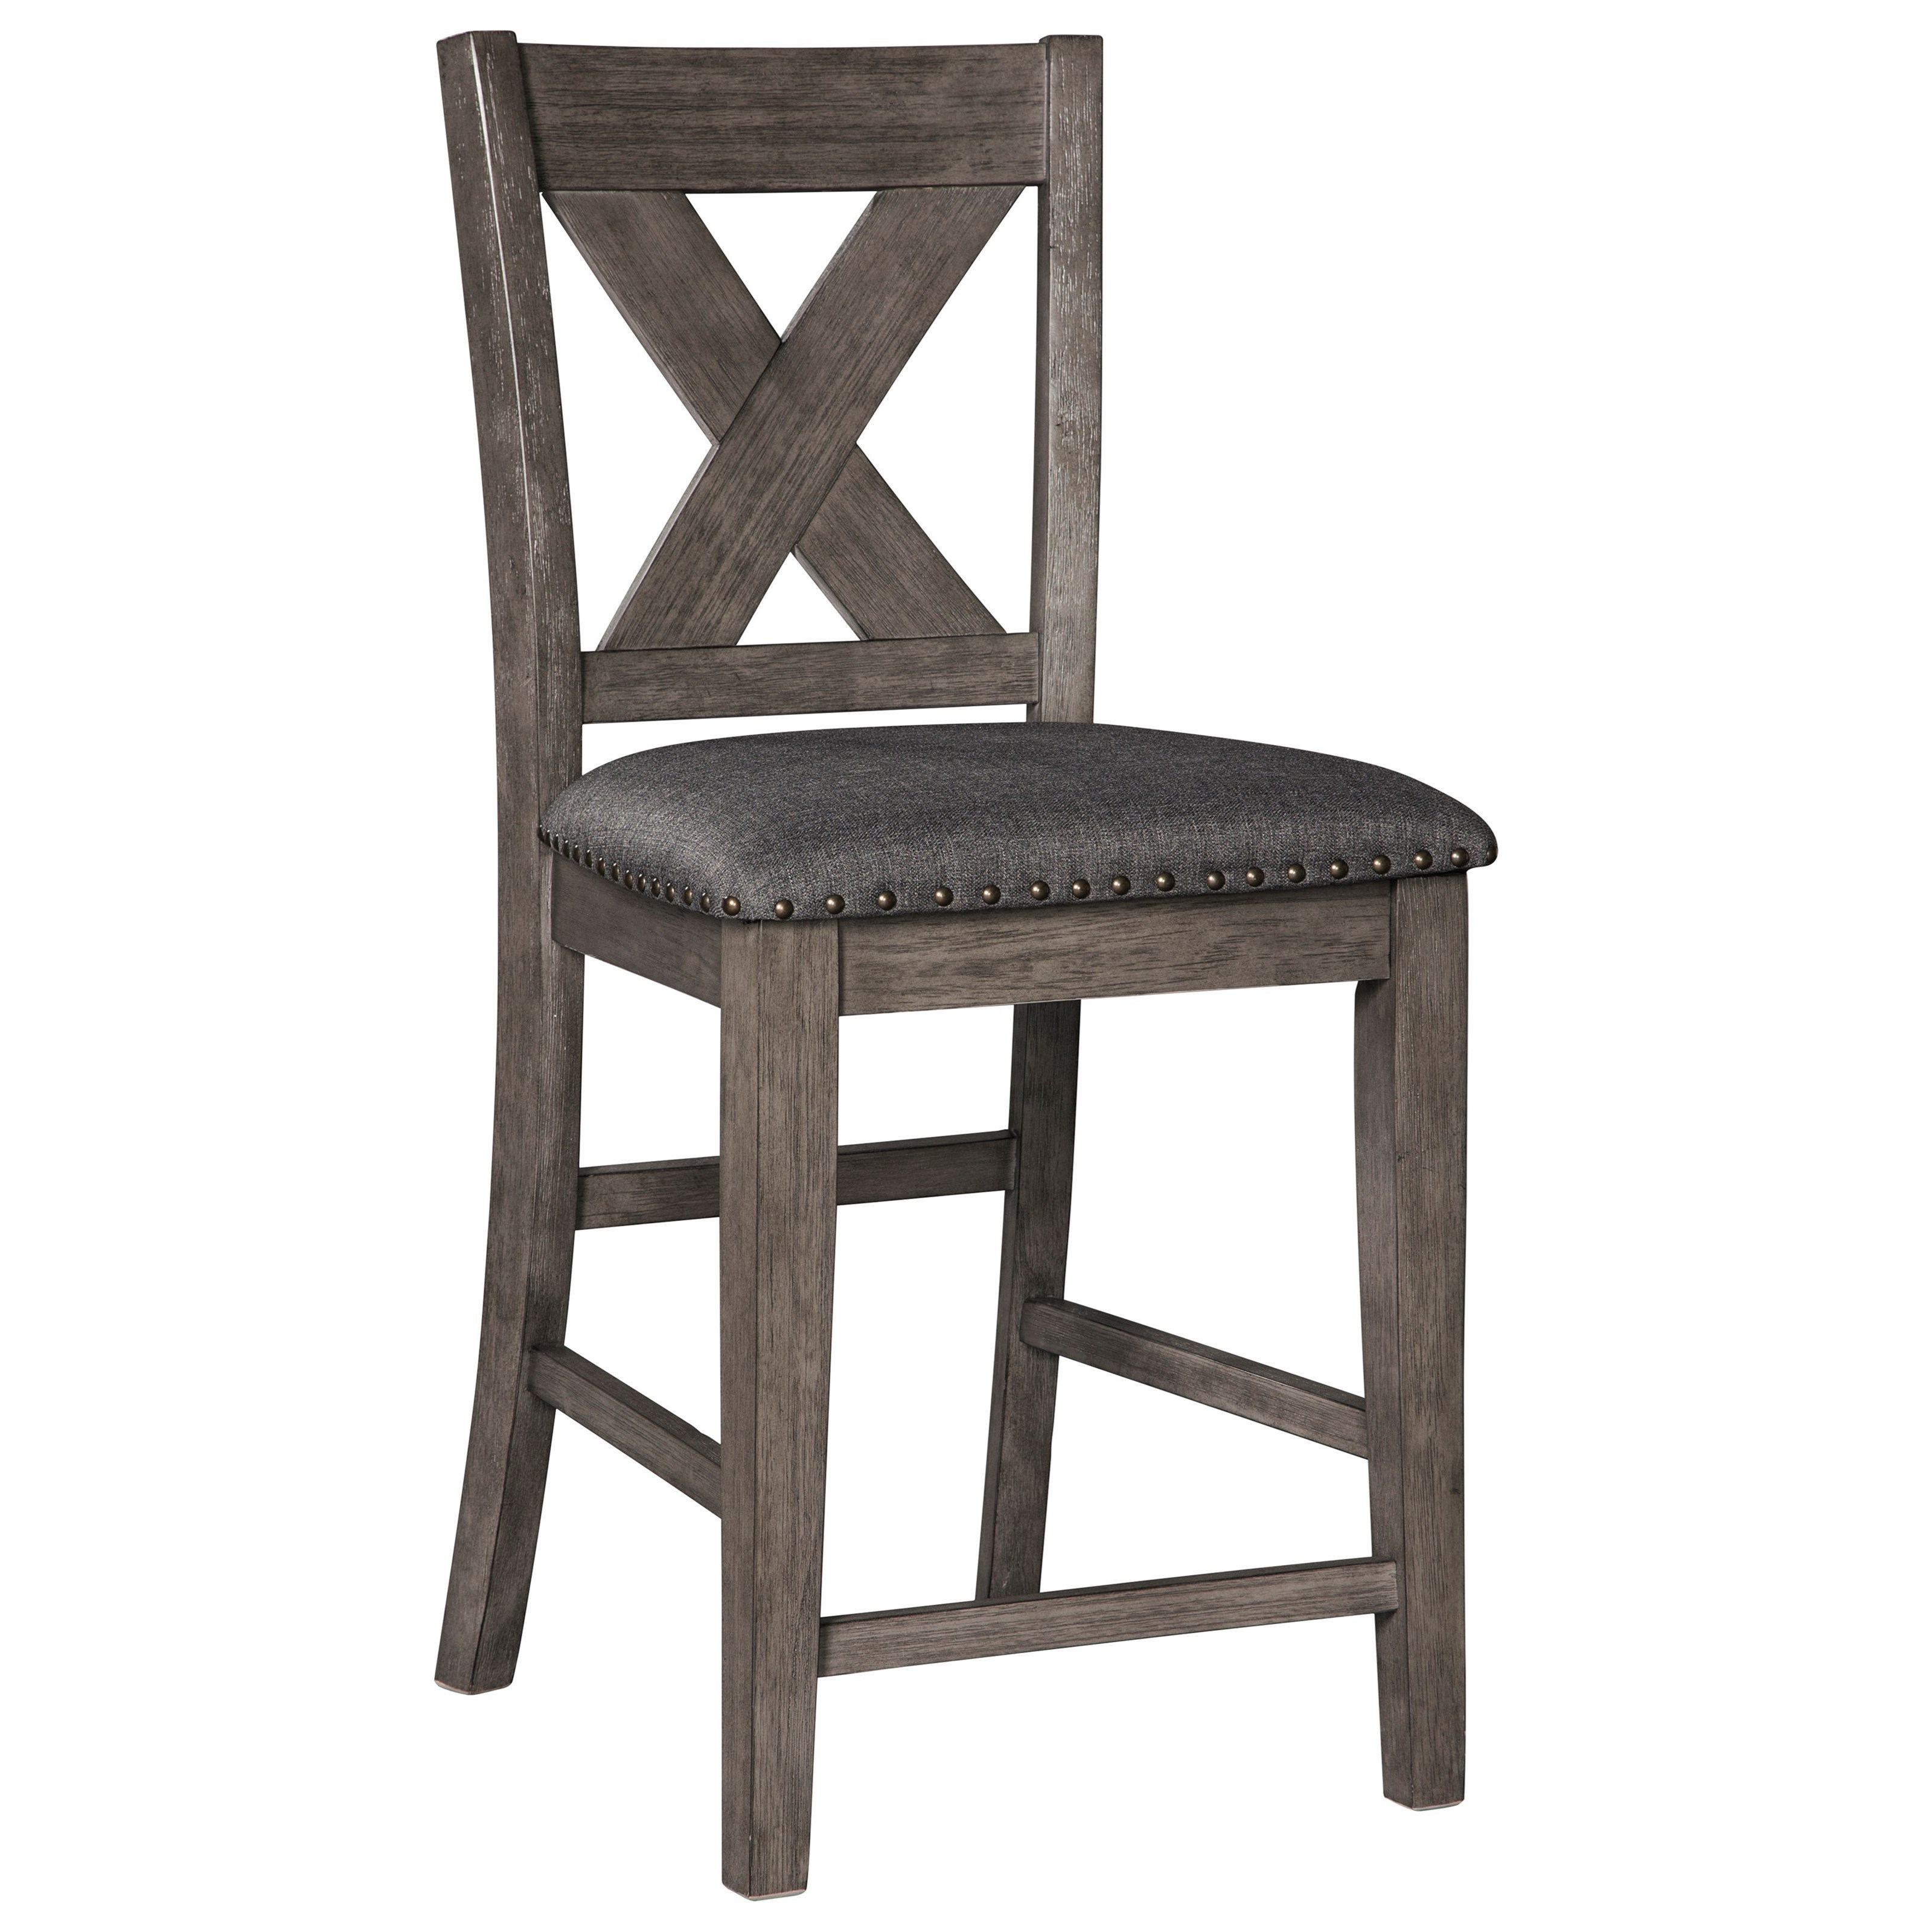 Relaxed Vintage Solid Wood Barstool with Nailhead Trim